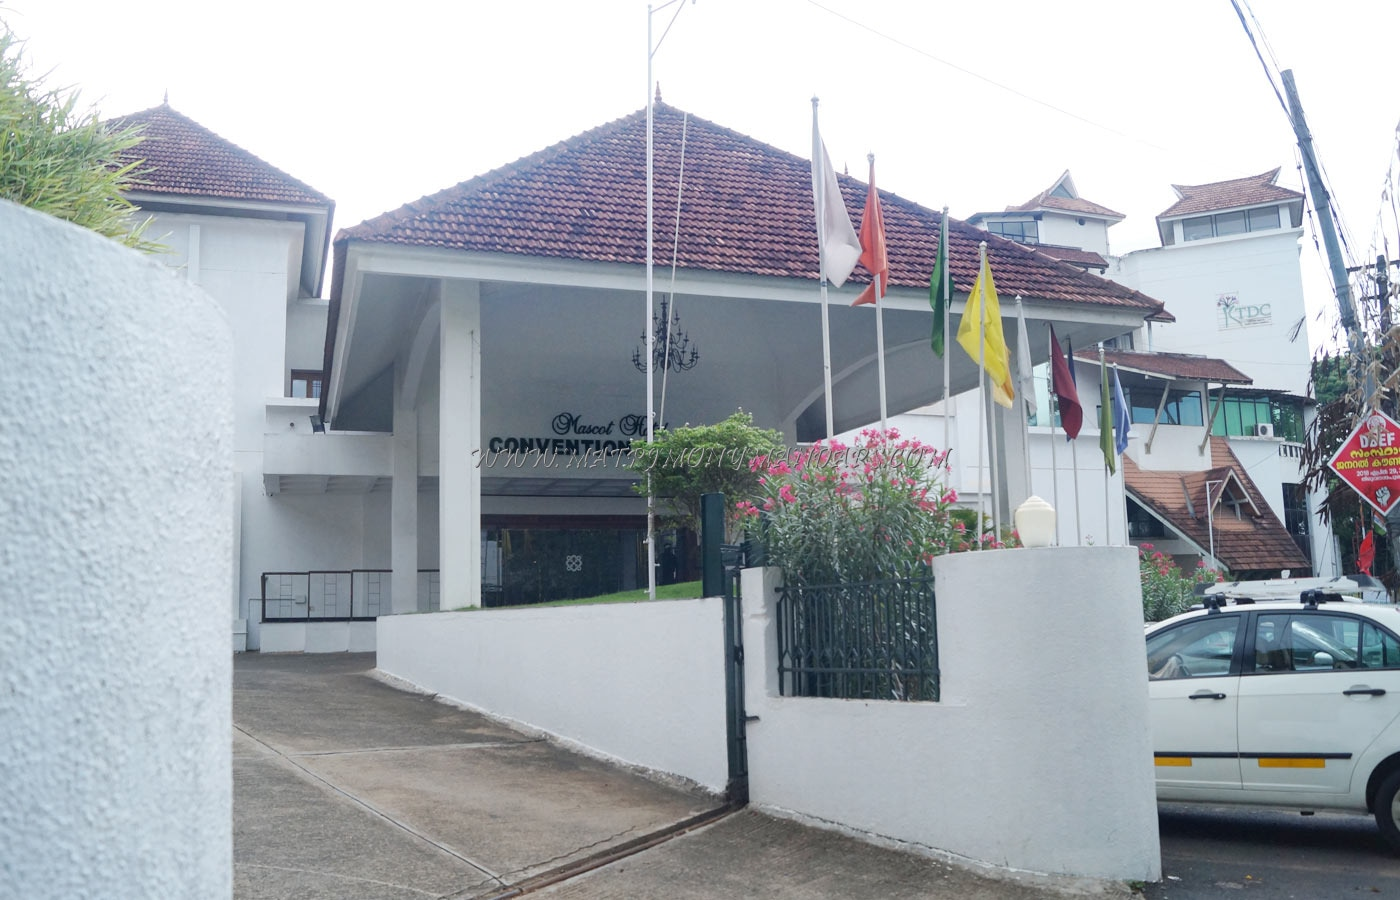 Find the availability of the Mascot Hotel Cupper Lawn in Pattom, Trivandrum and avail special offers